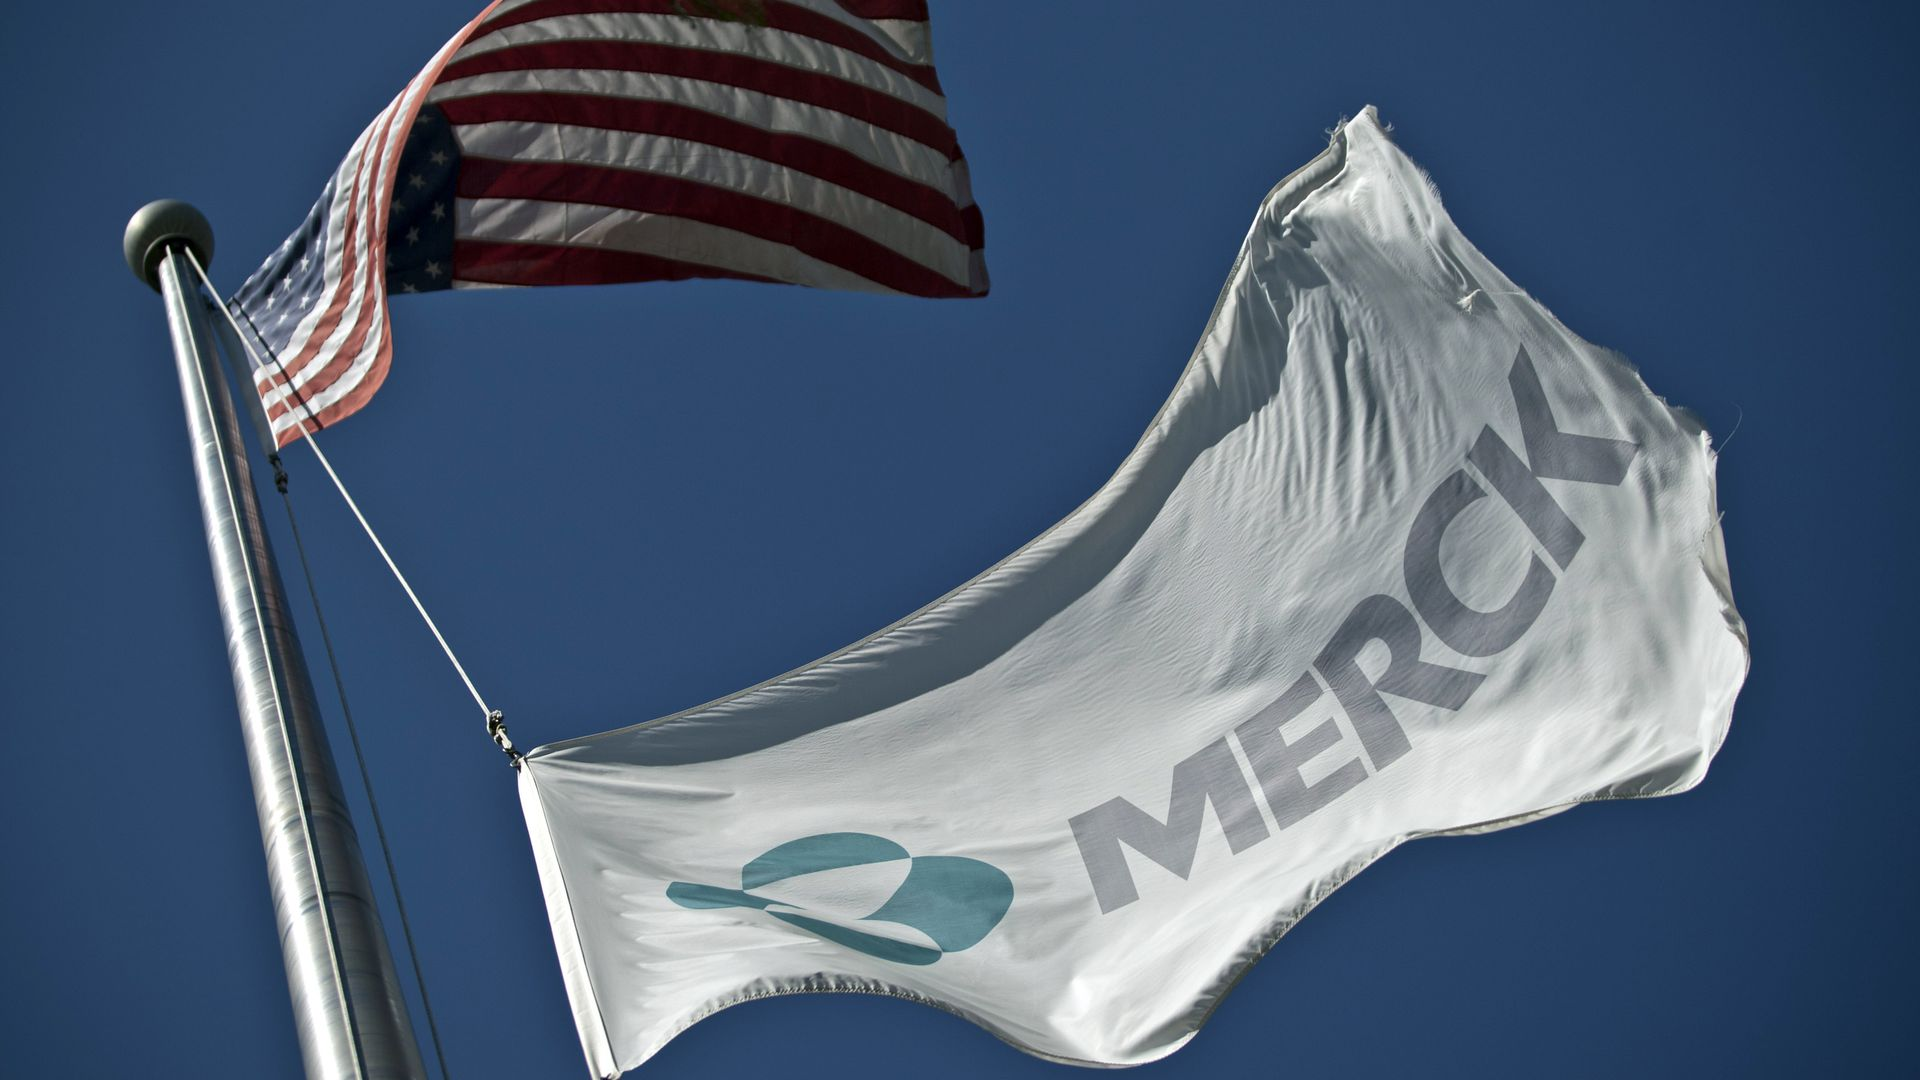 A Merck flag flies underneath the American flag.